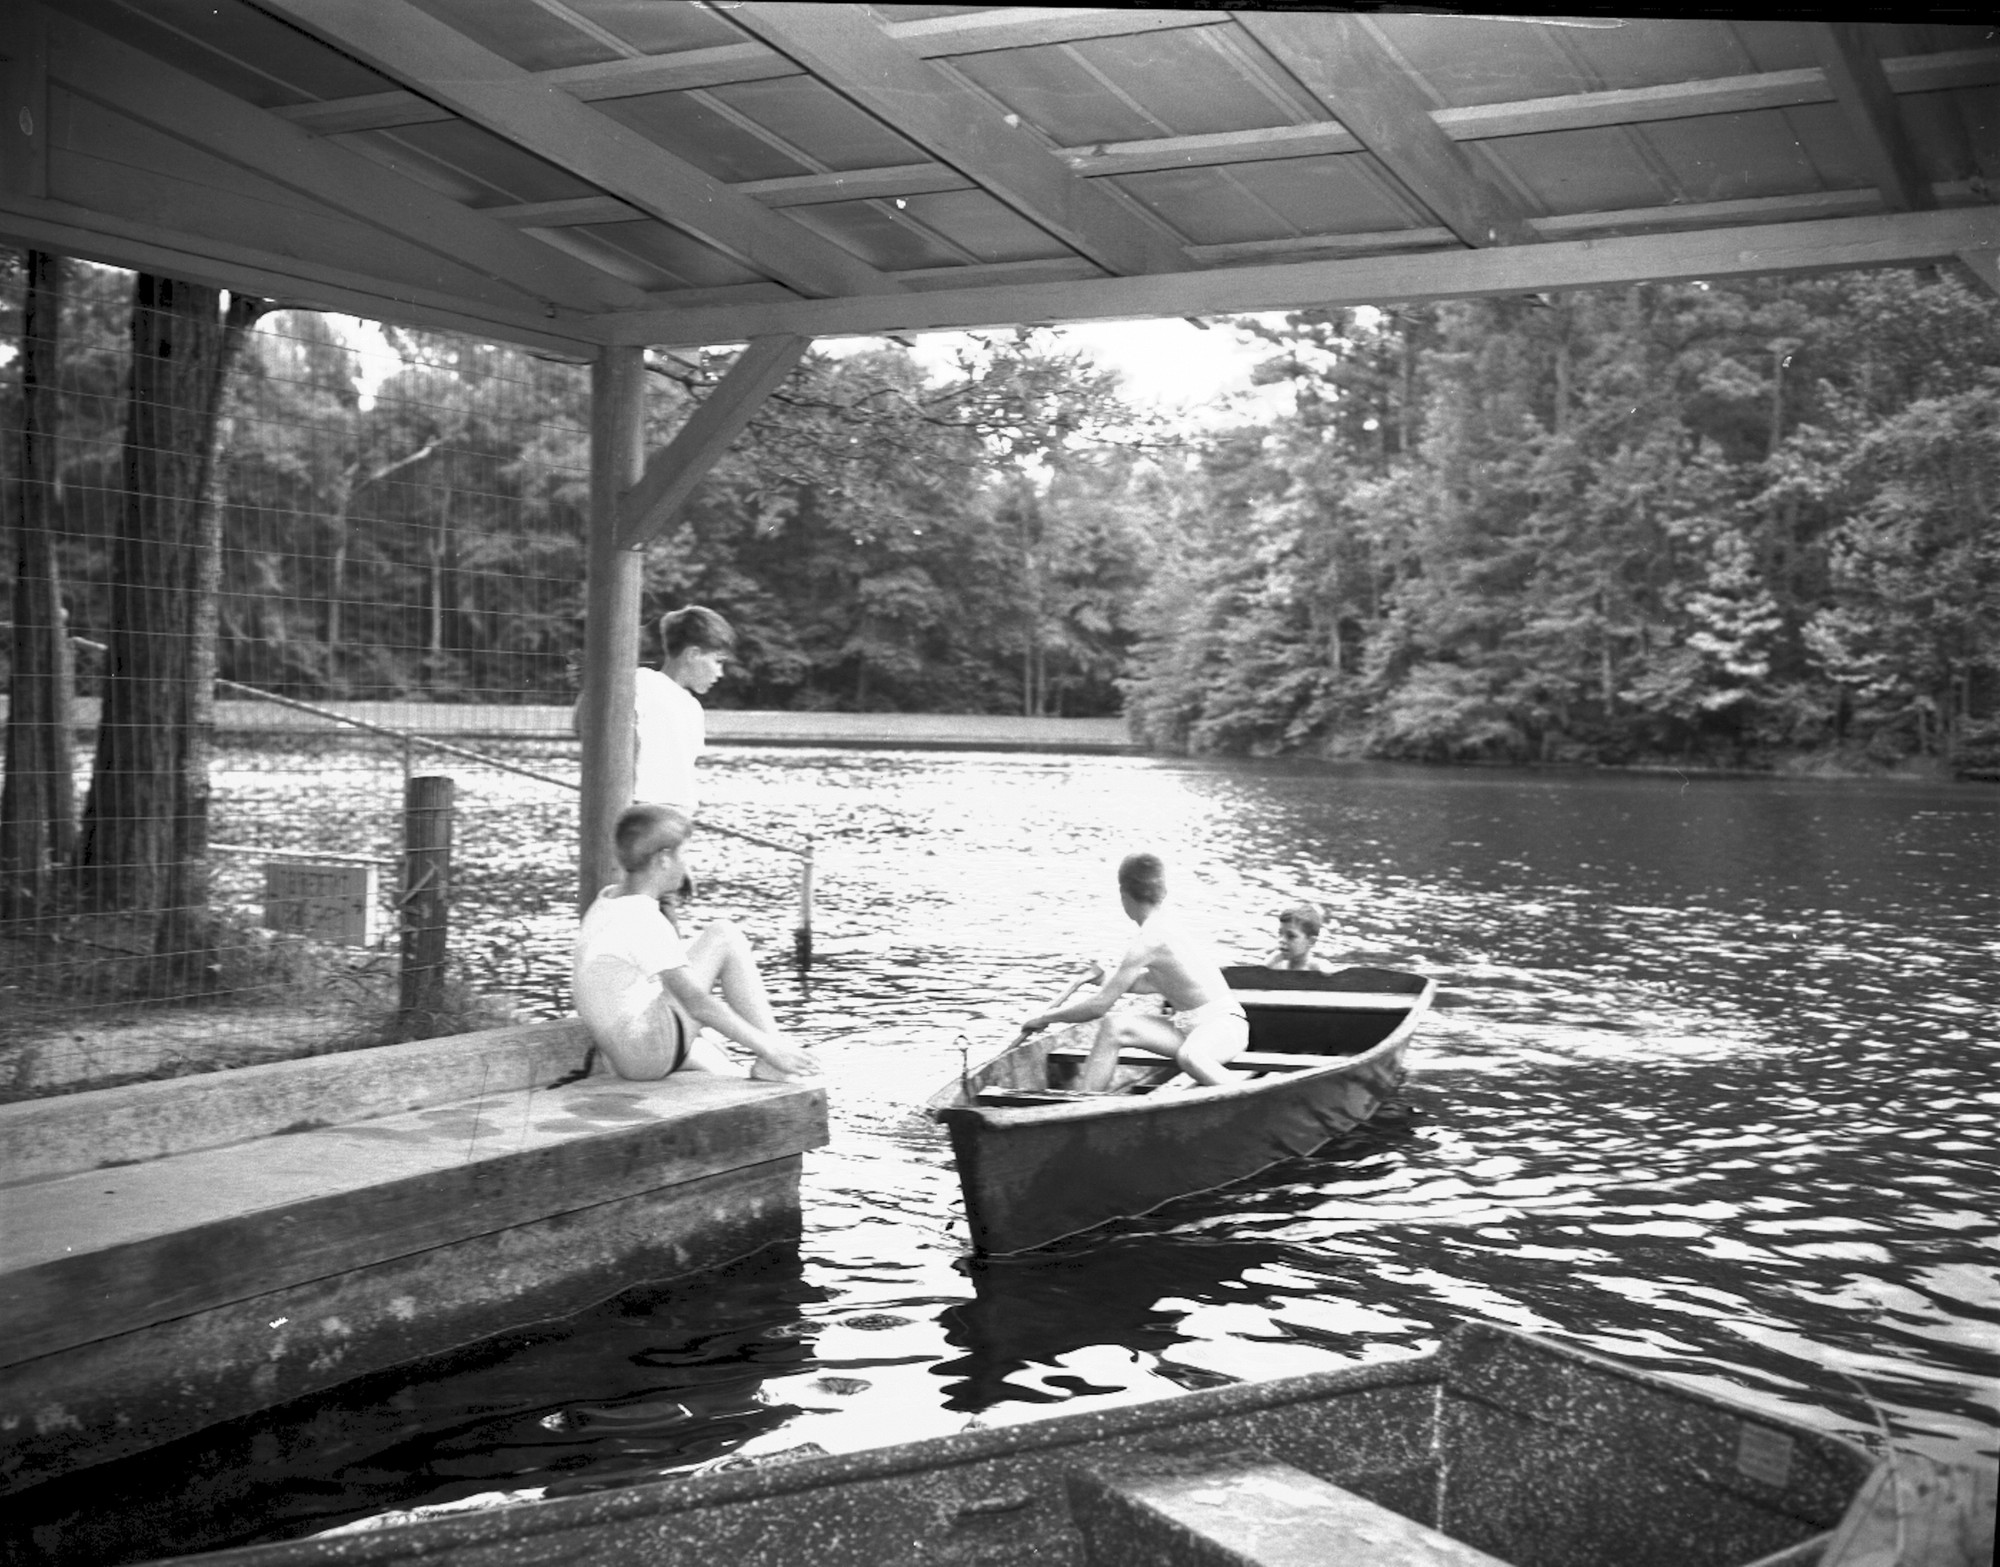 The boat house at Poinsett State Park remains for those wishing to get on the water.